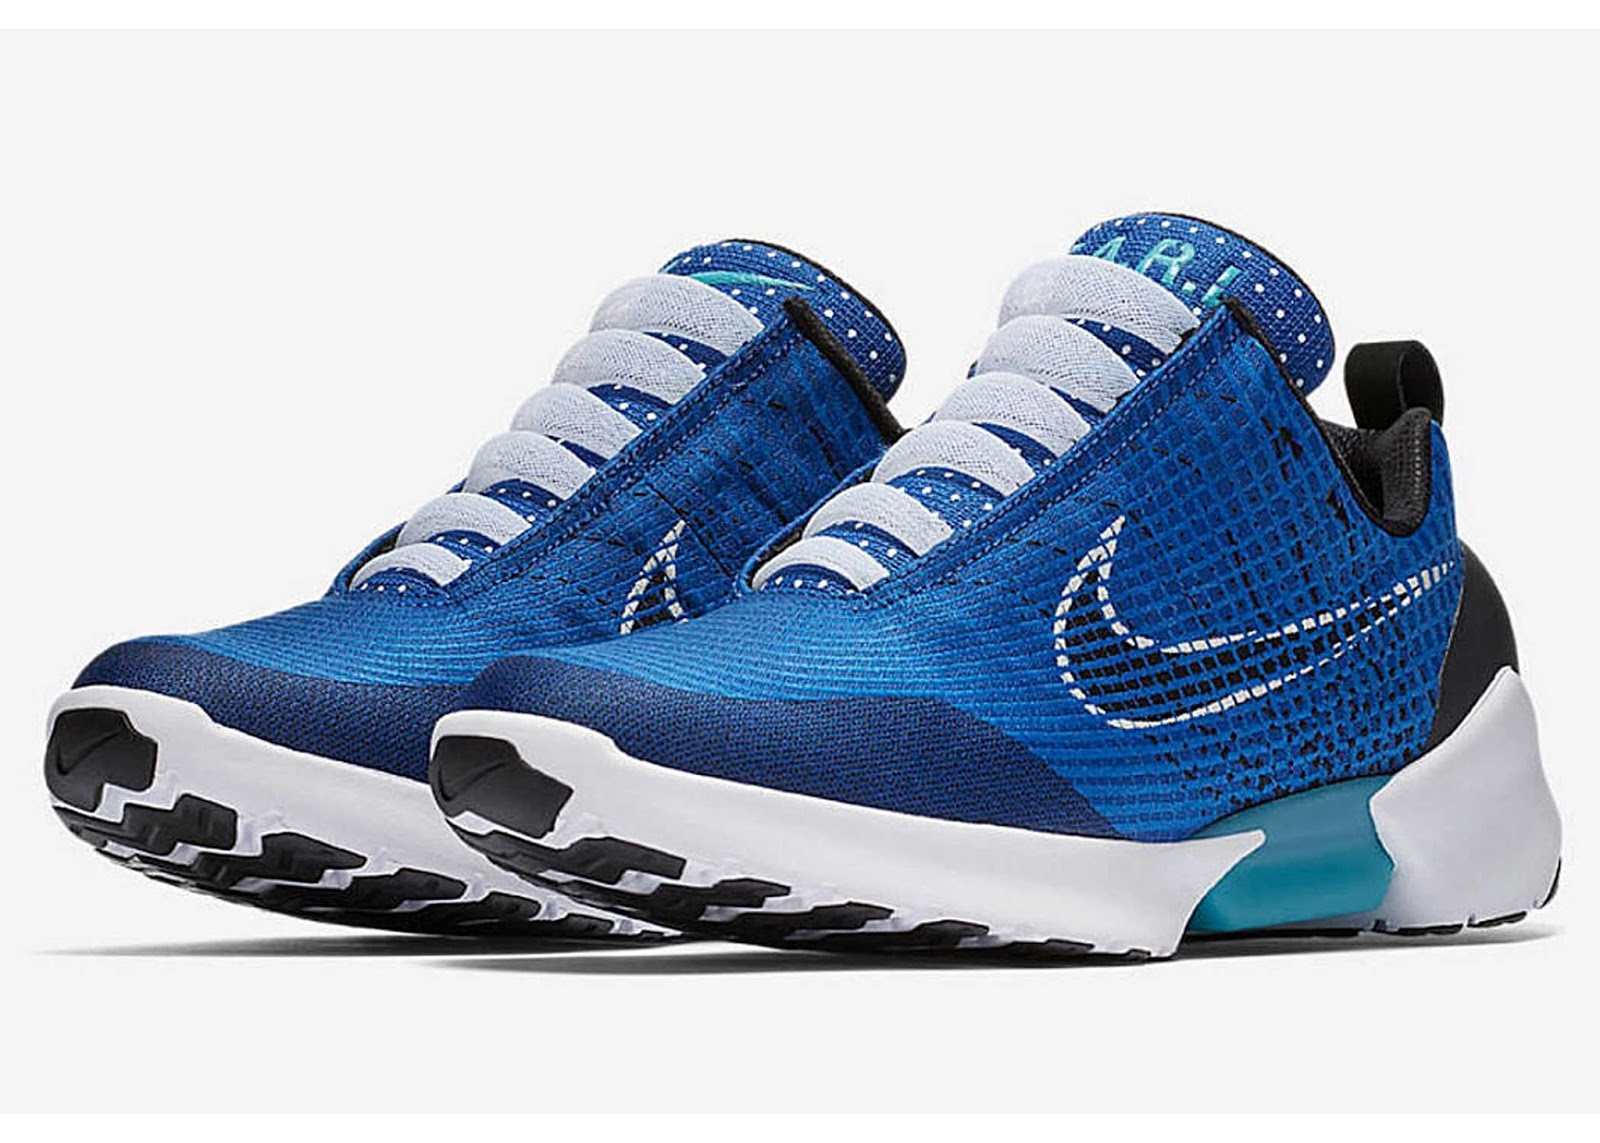 Latest: Nike Release Sales/Launch Date For New HyperAdapt 1.0 Self-Lacing  Sneakers